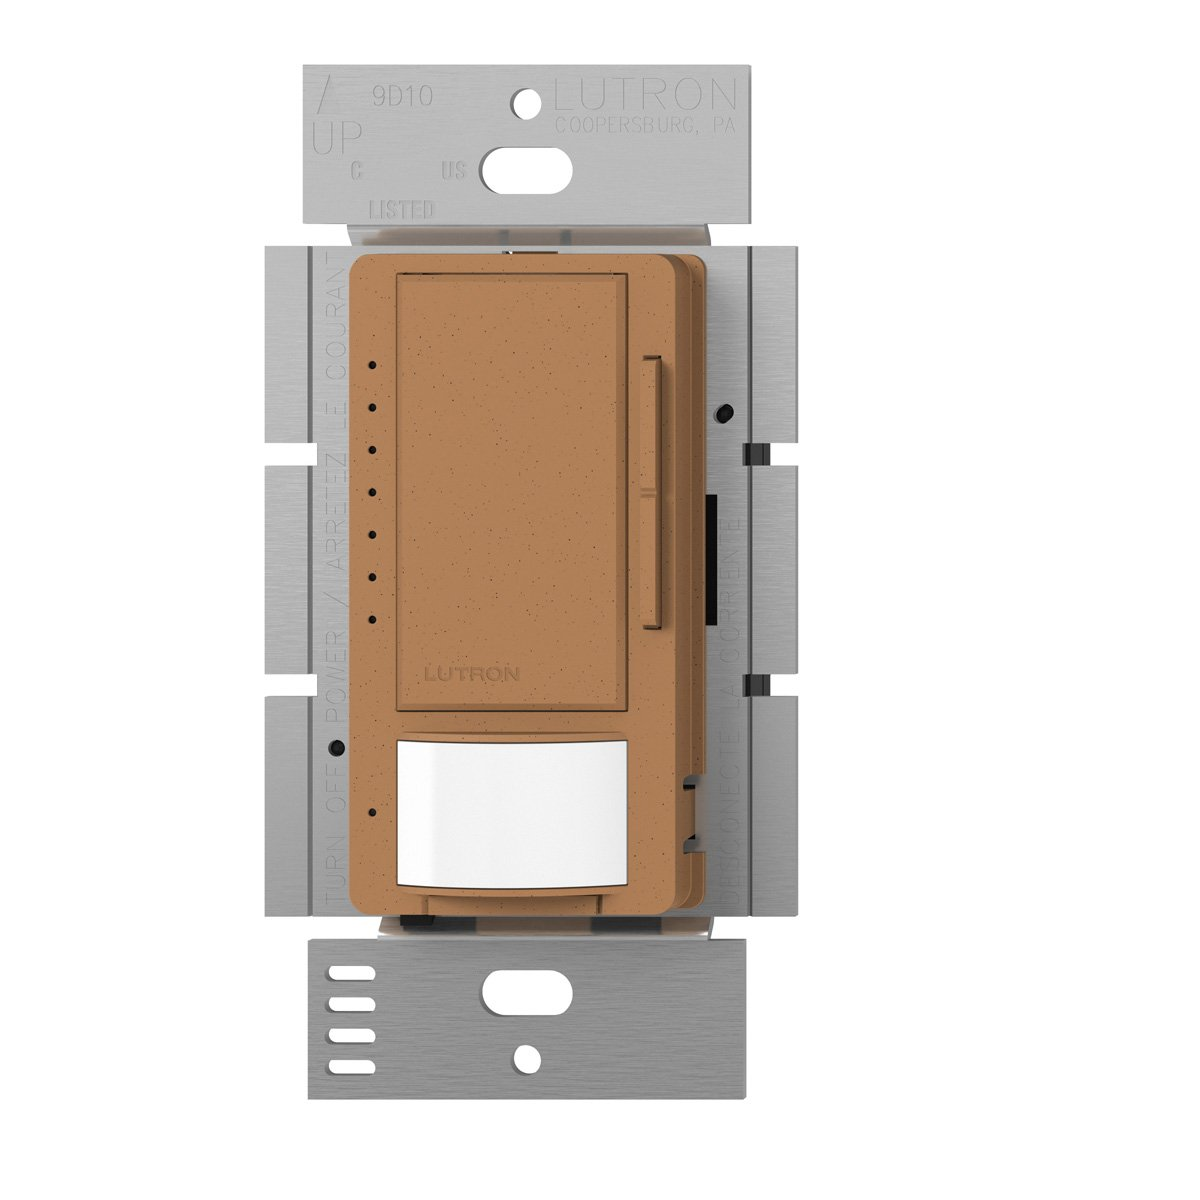 Lutron MSCL-VP153M-TC Maestro CL Single Pole Multi Location Vacancy Sensing Dimmer, Terracotta by Lutron B00FQL2O5W テラコッタ テラコッタ